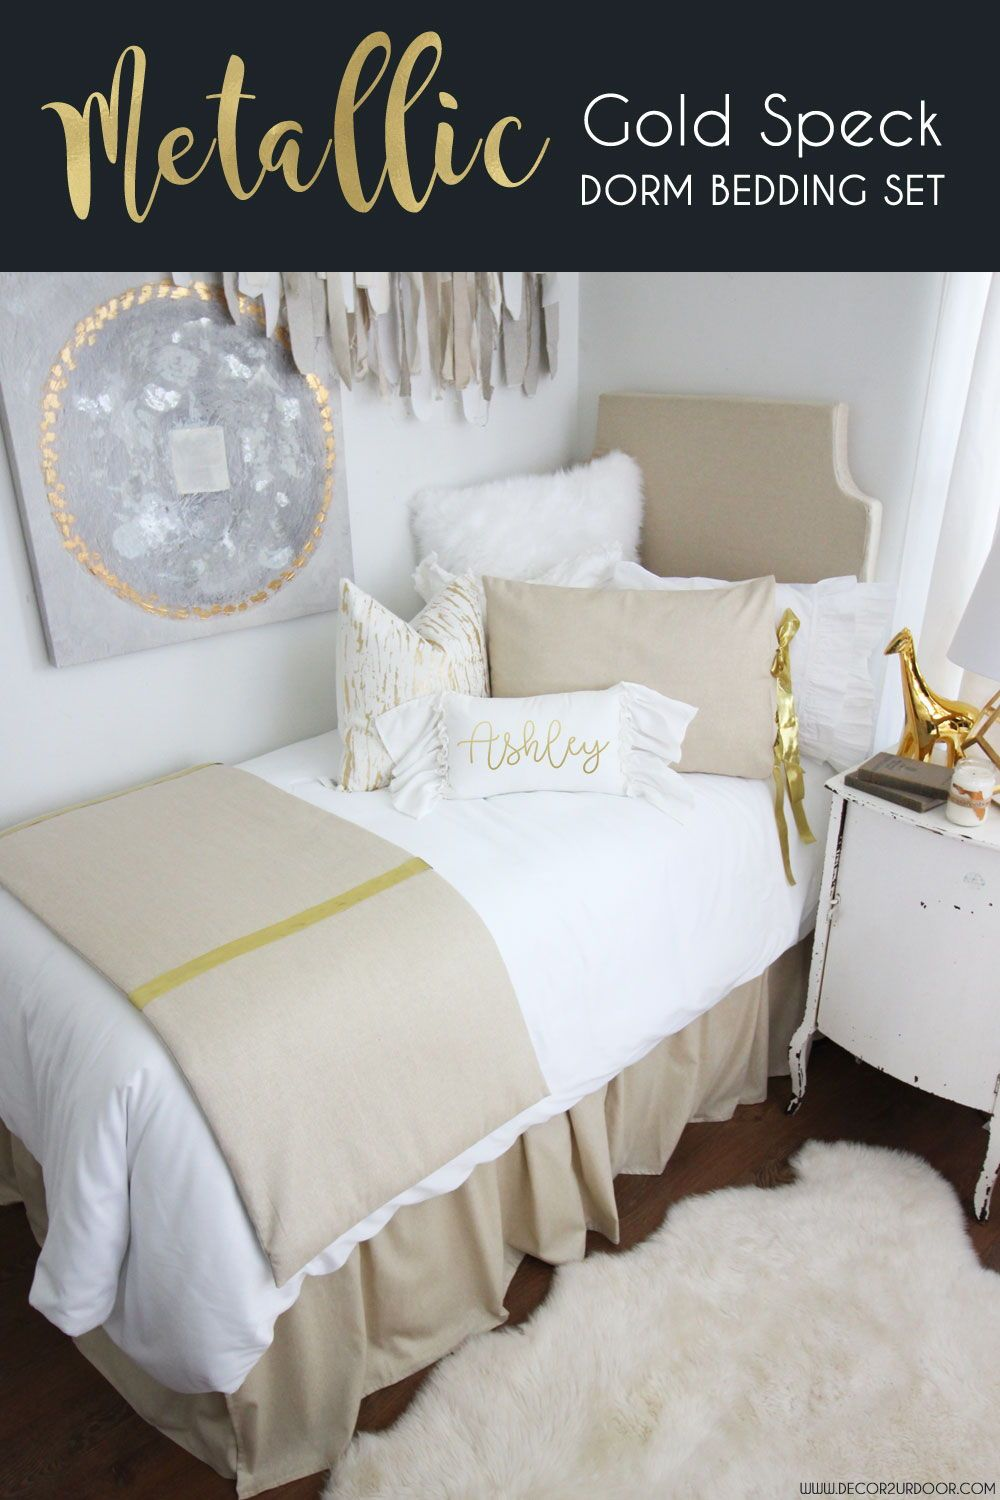 this metallic gold speck dorm bedding collection is the ultimate in